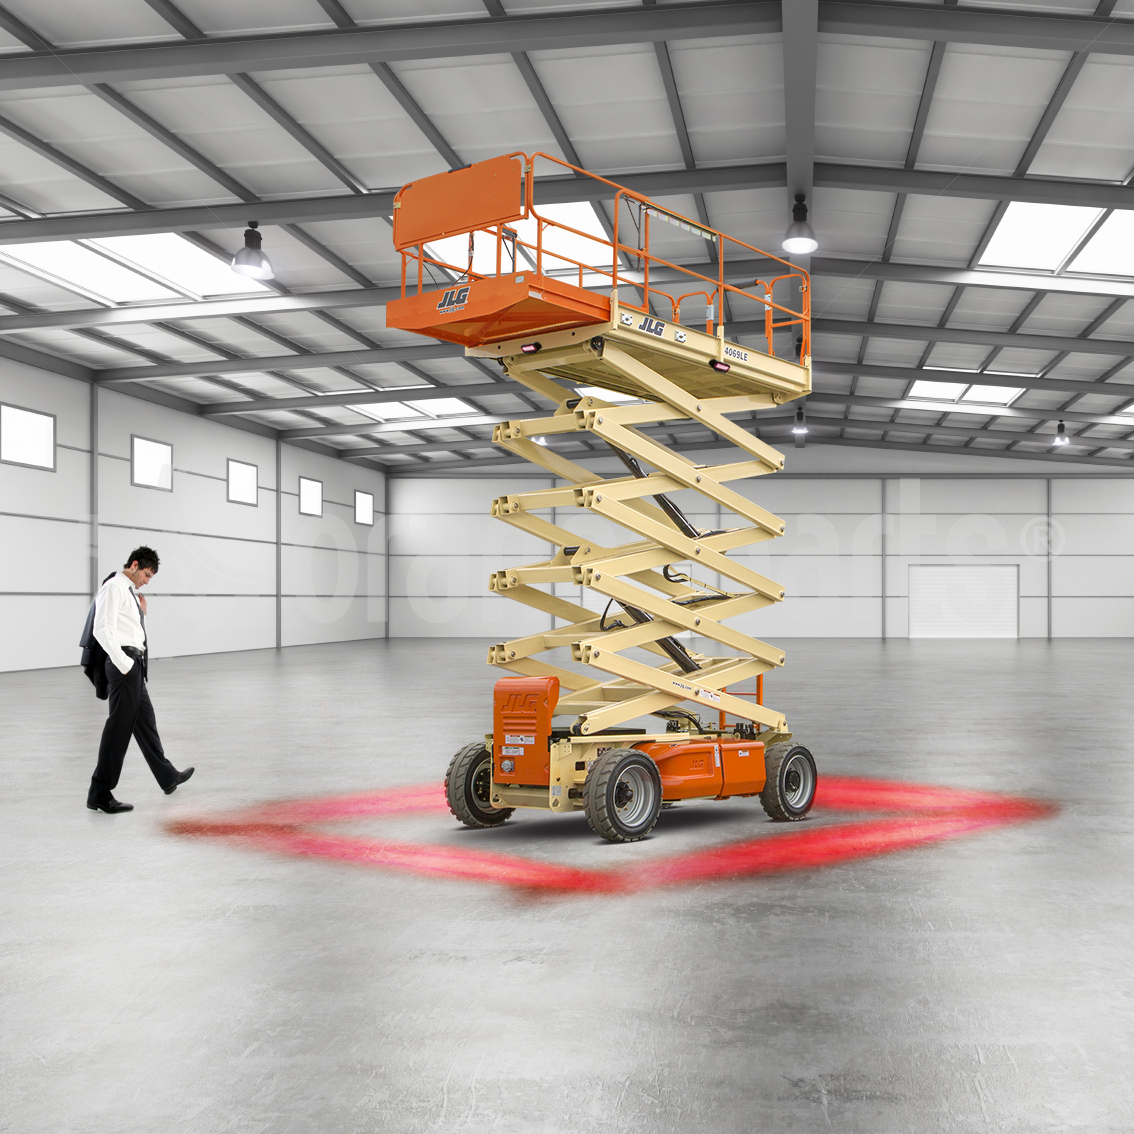 red zone forklift light mounted on jlg